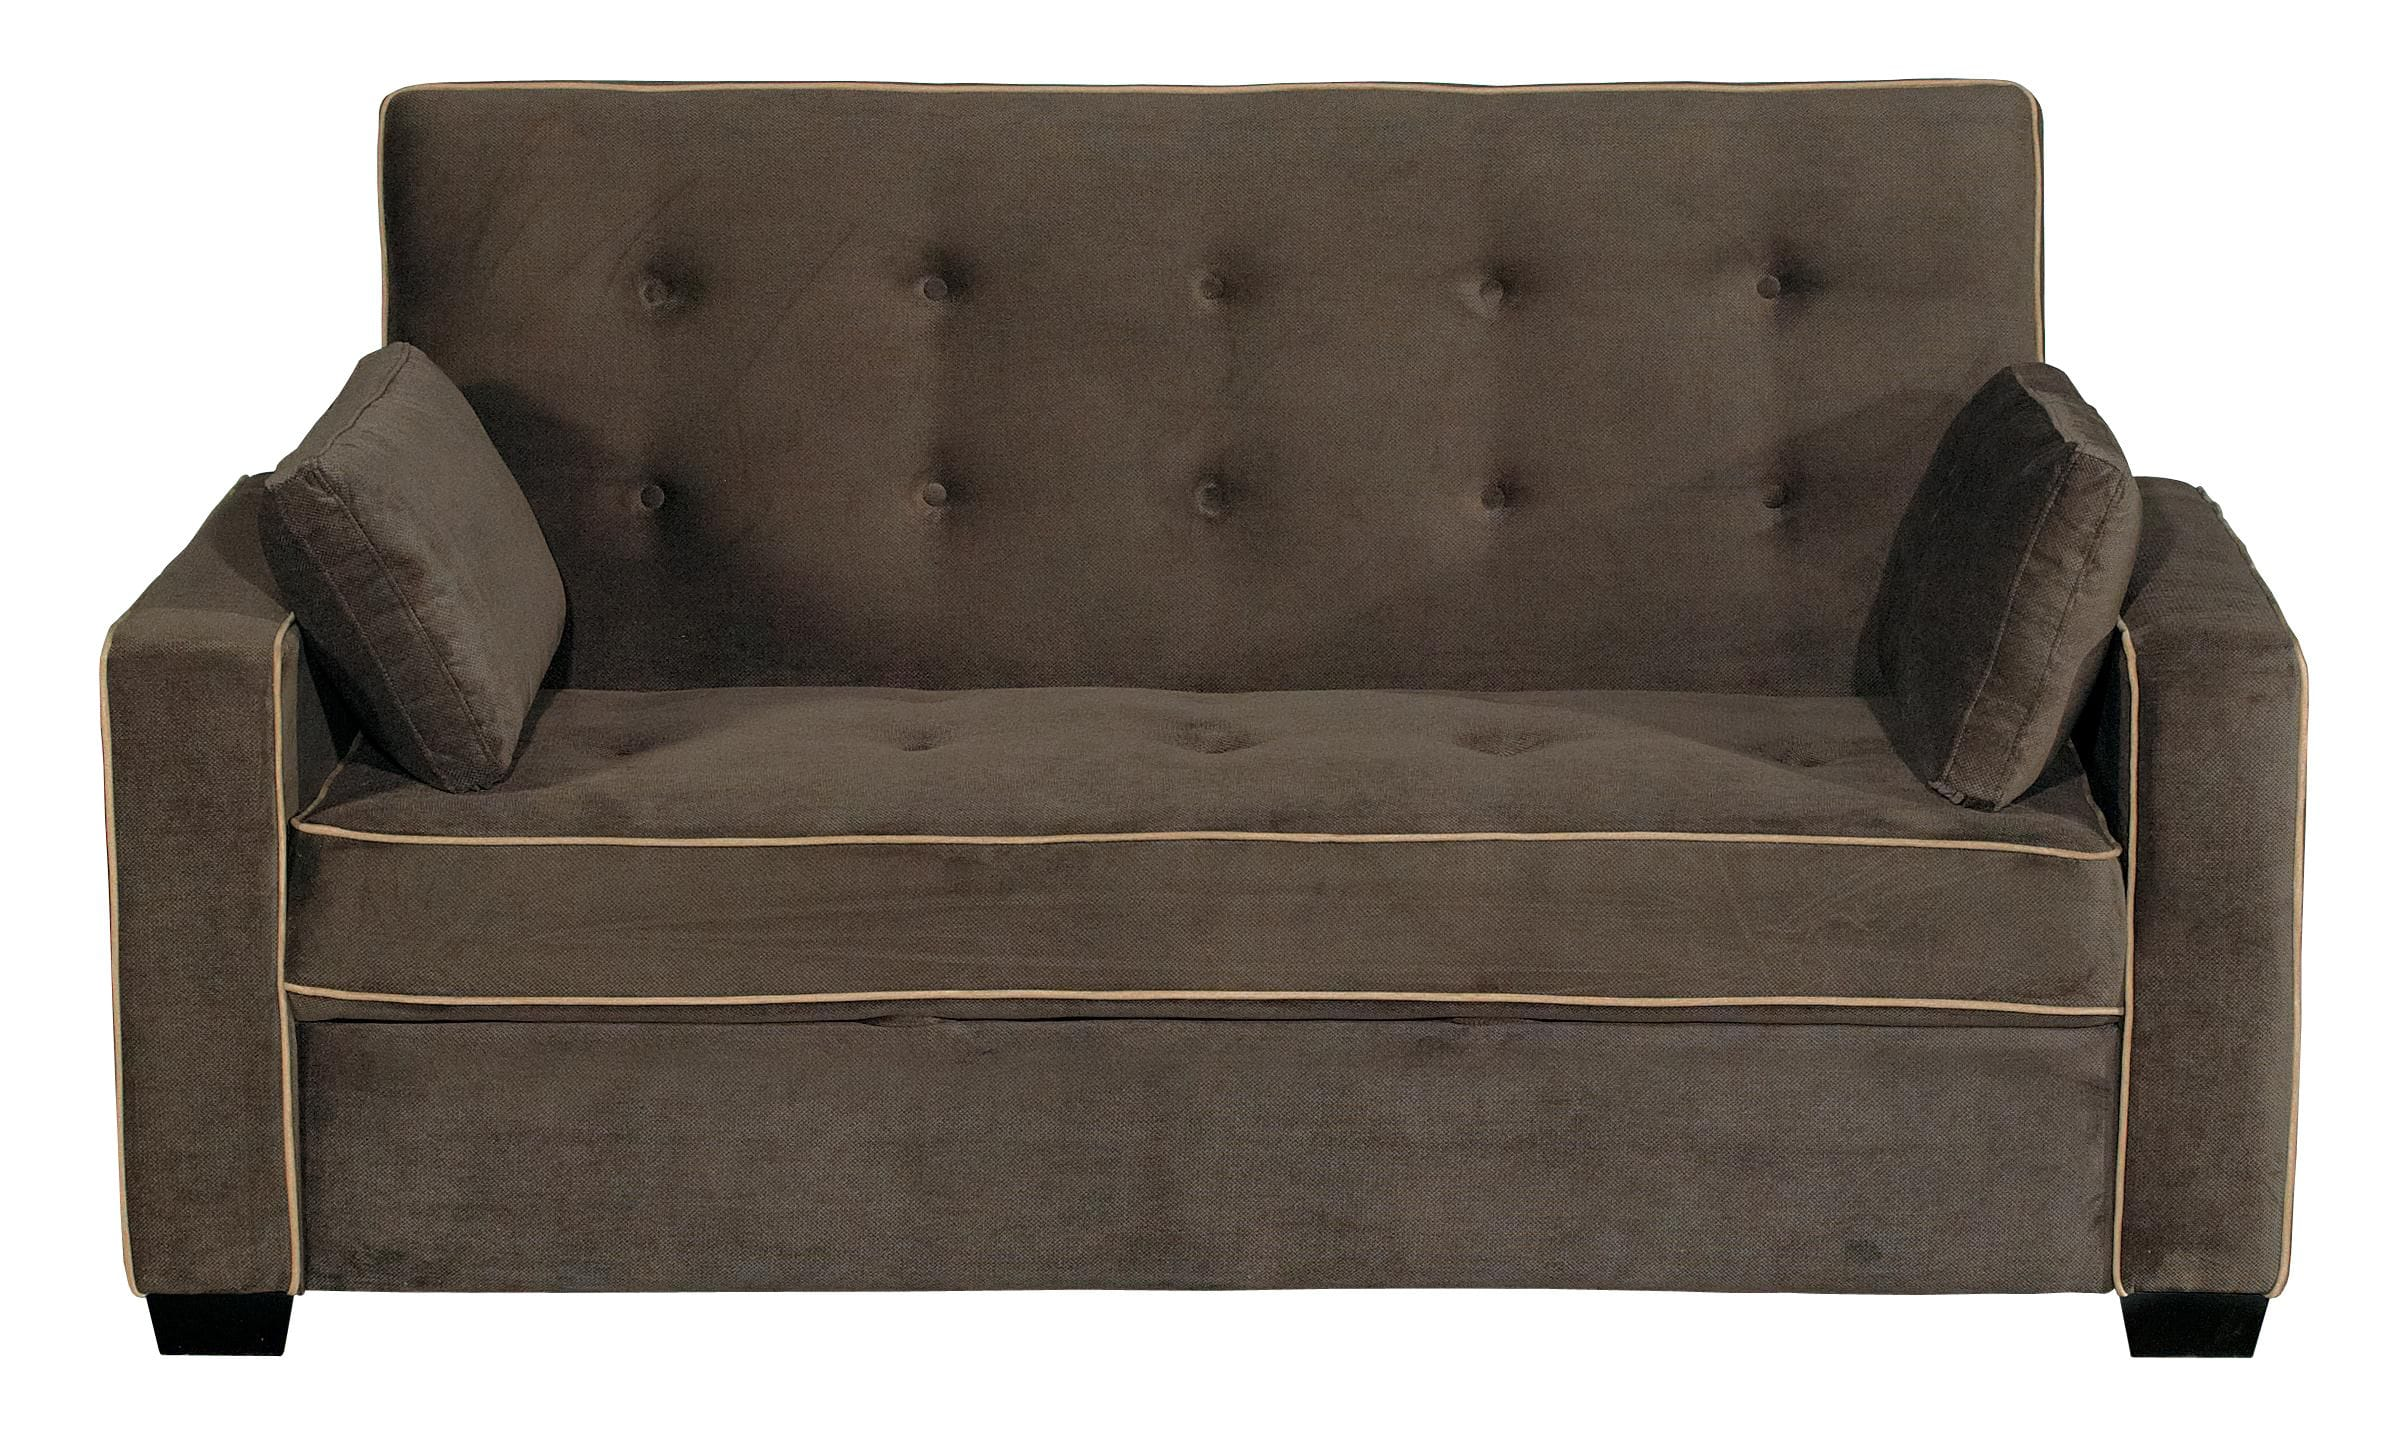 serta sofa sleeper full size armen living barrister review augustine loveseat java by lifestyle